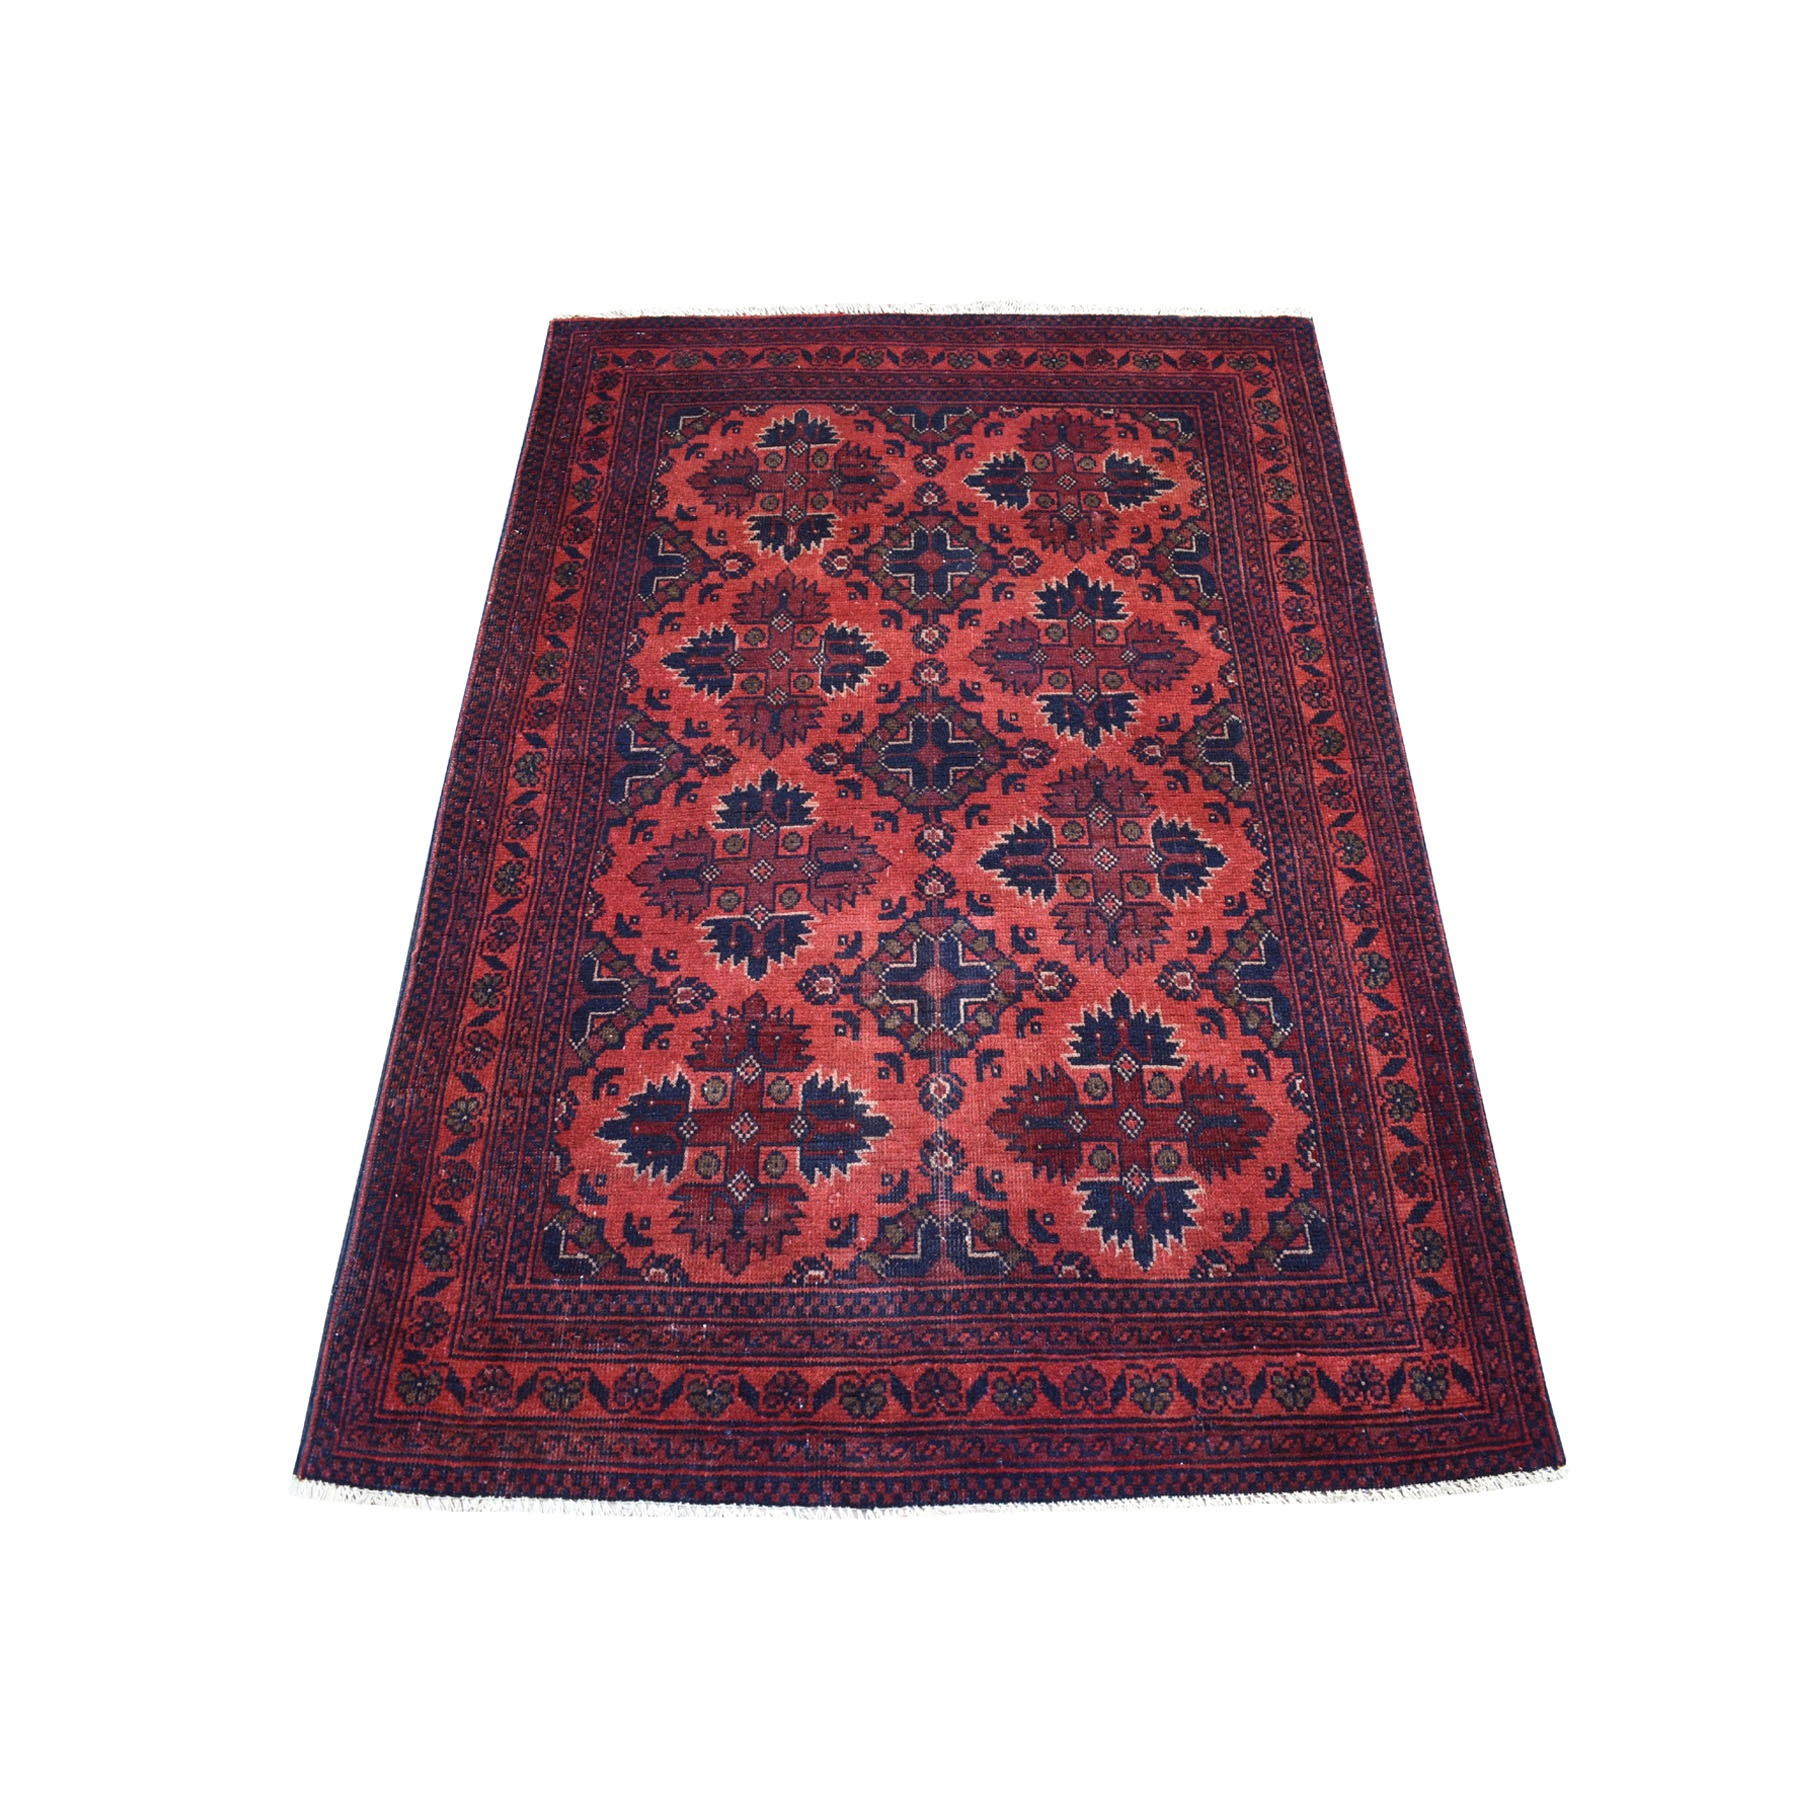 "3'4""x5' Deep and Saturated Red Geometric Design Afghan Andkhoy Pure Wool Hand Woven Oriental Rug"